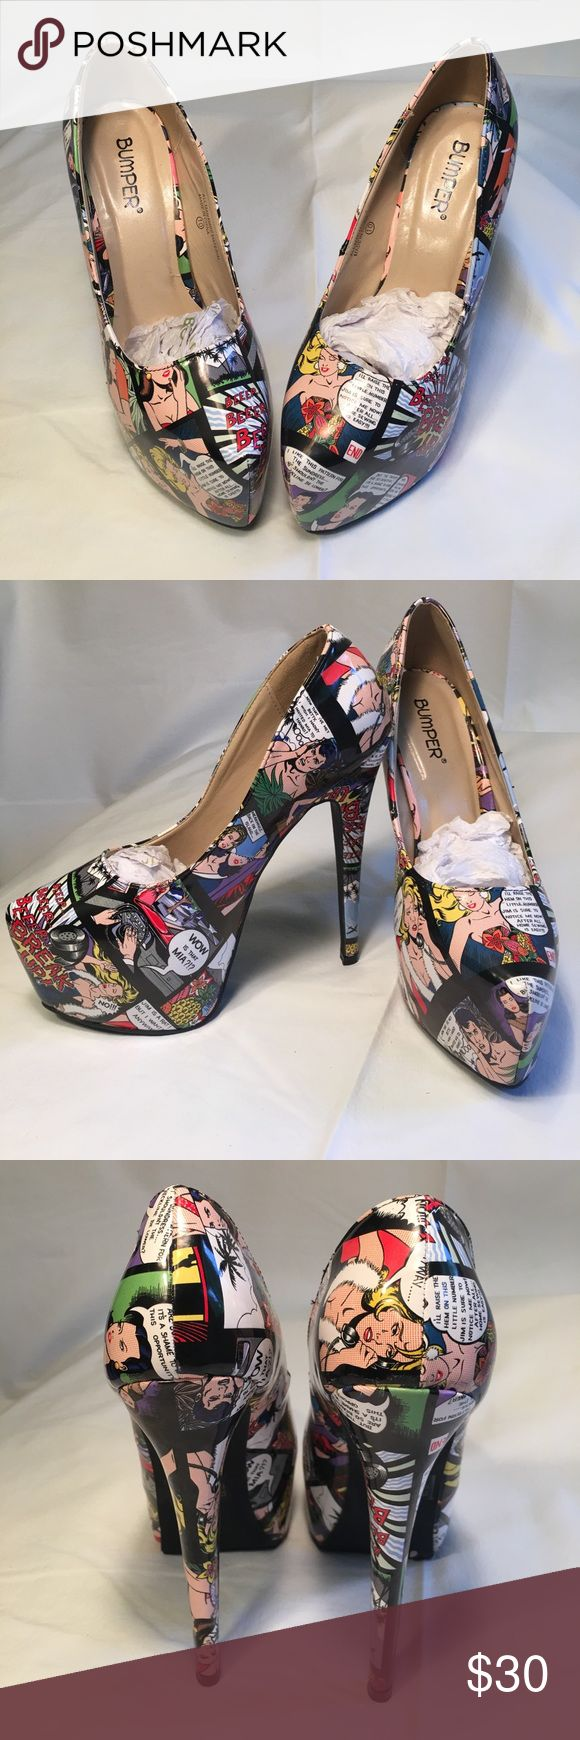 Bumper Popart Comicbook heels Let your feet do the talking in these Bumper Pop Art Comic book heels!  With a colorful comic strip printed upper, these colorful pumps make a real statement. A slender 6.25-inch stiletto heel gives you a lift, coupled with a concealed 2.25-inch platform to support. Material: Faux leather Toe shape: Almond Heel height/type: 6.25-inch stiletto Platform height: 2.25 inches Width: Medium Bumper Shoes Heels